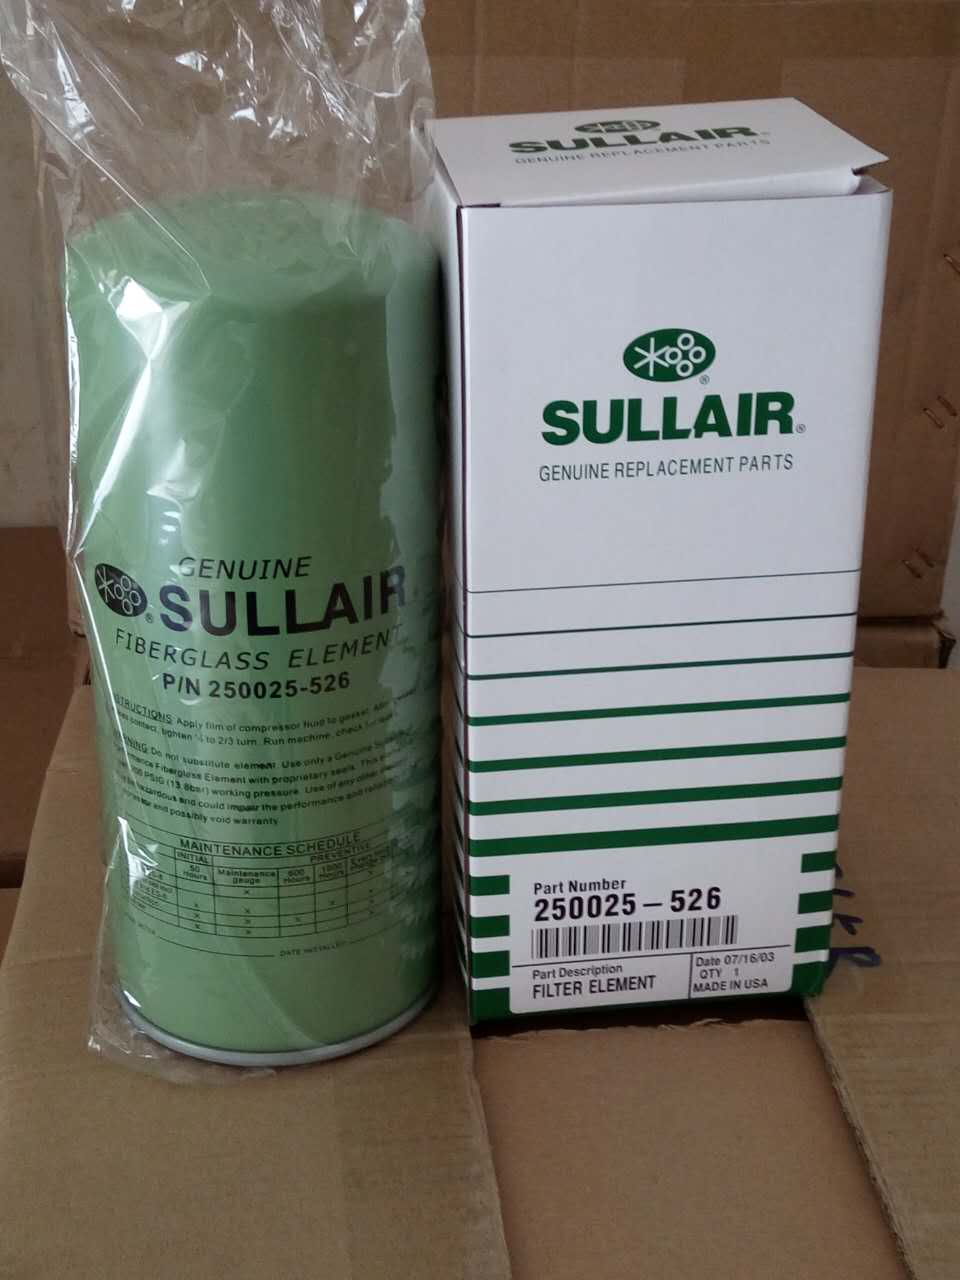 l-7885-c-d-7847-u-m-sullair-250025-526.jpg